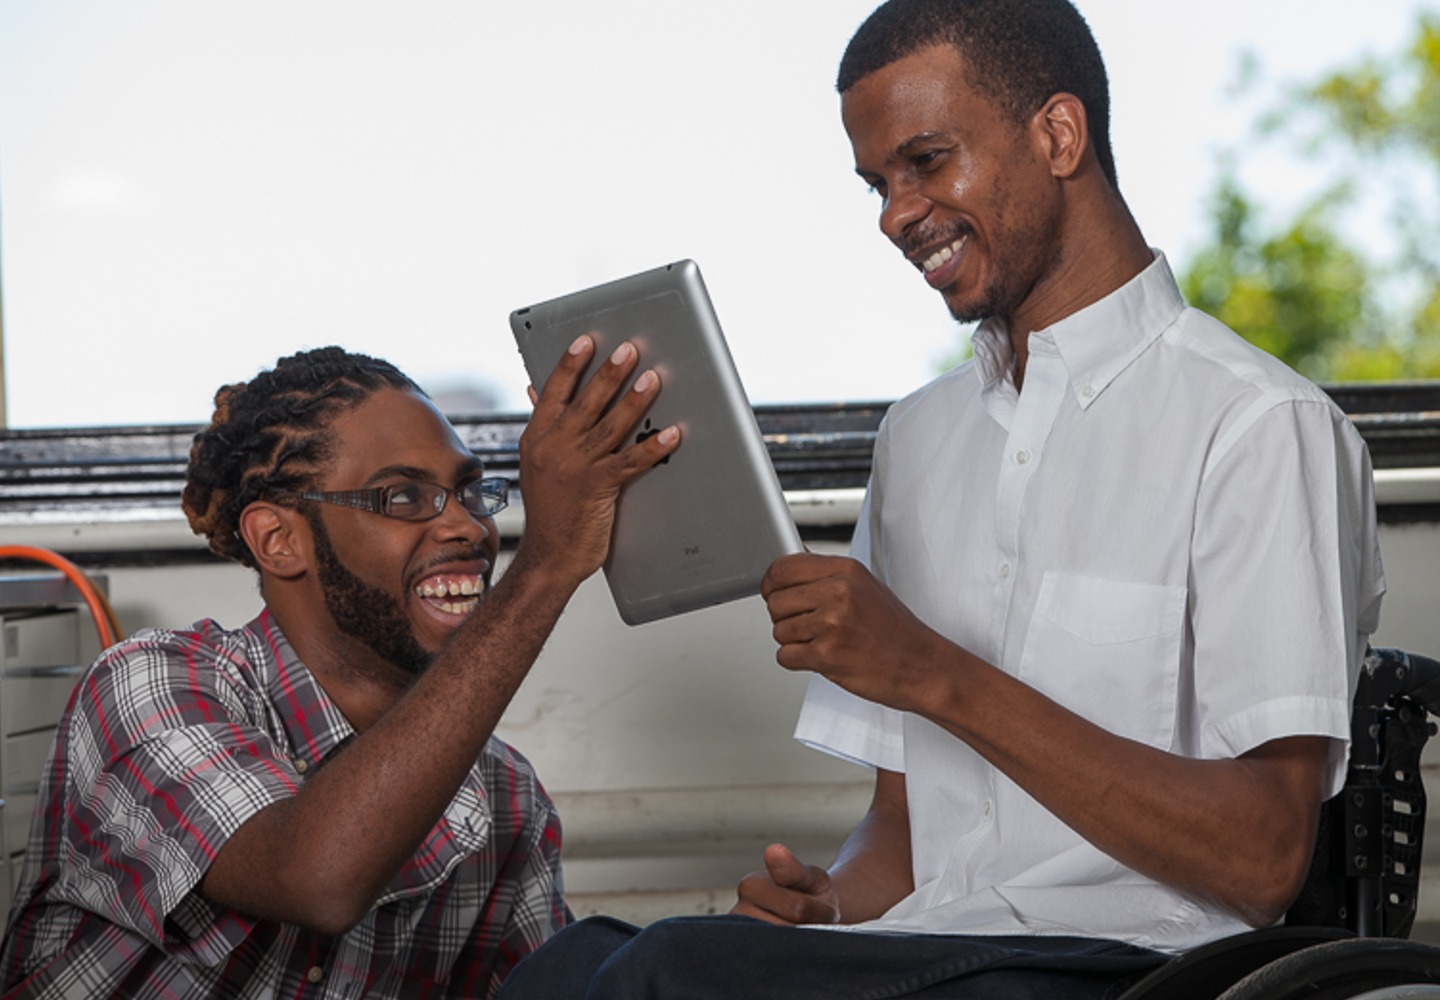 Two young black men looking at an iPad screen, smiling at what they see